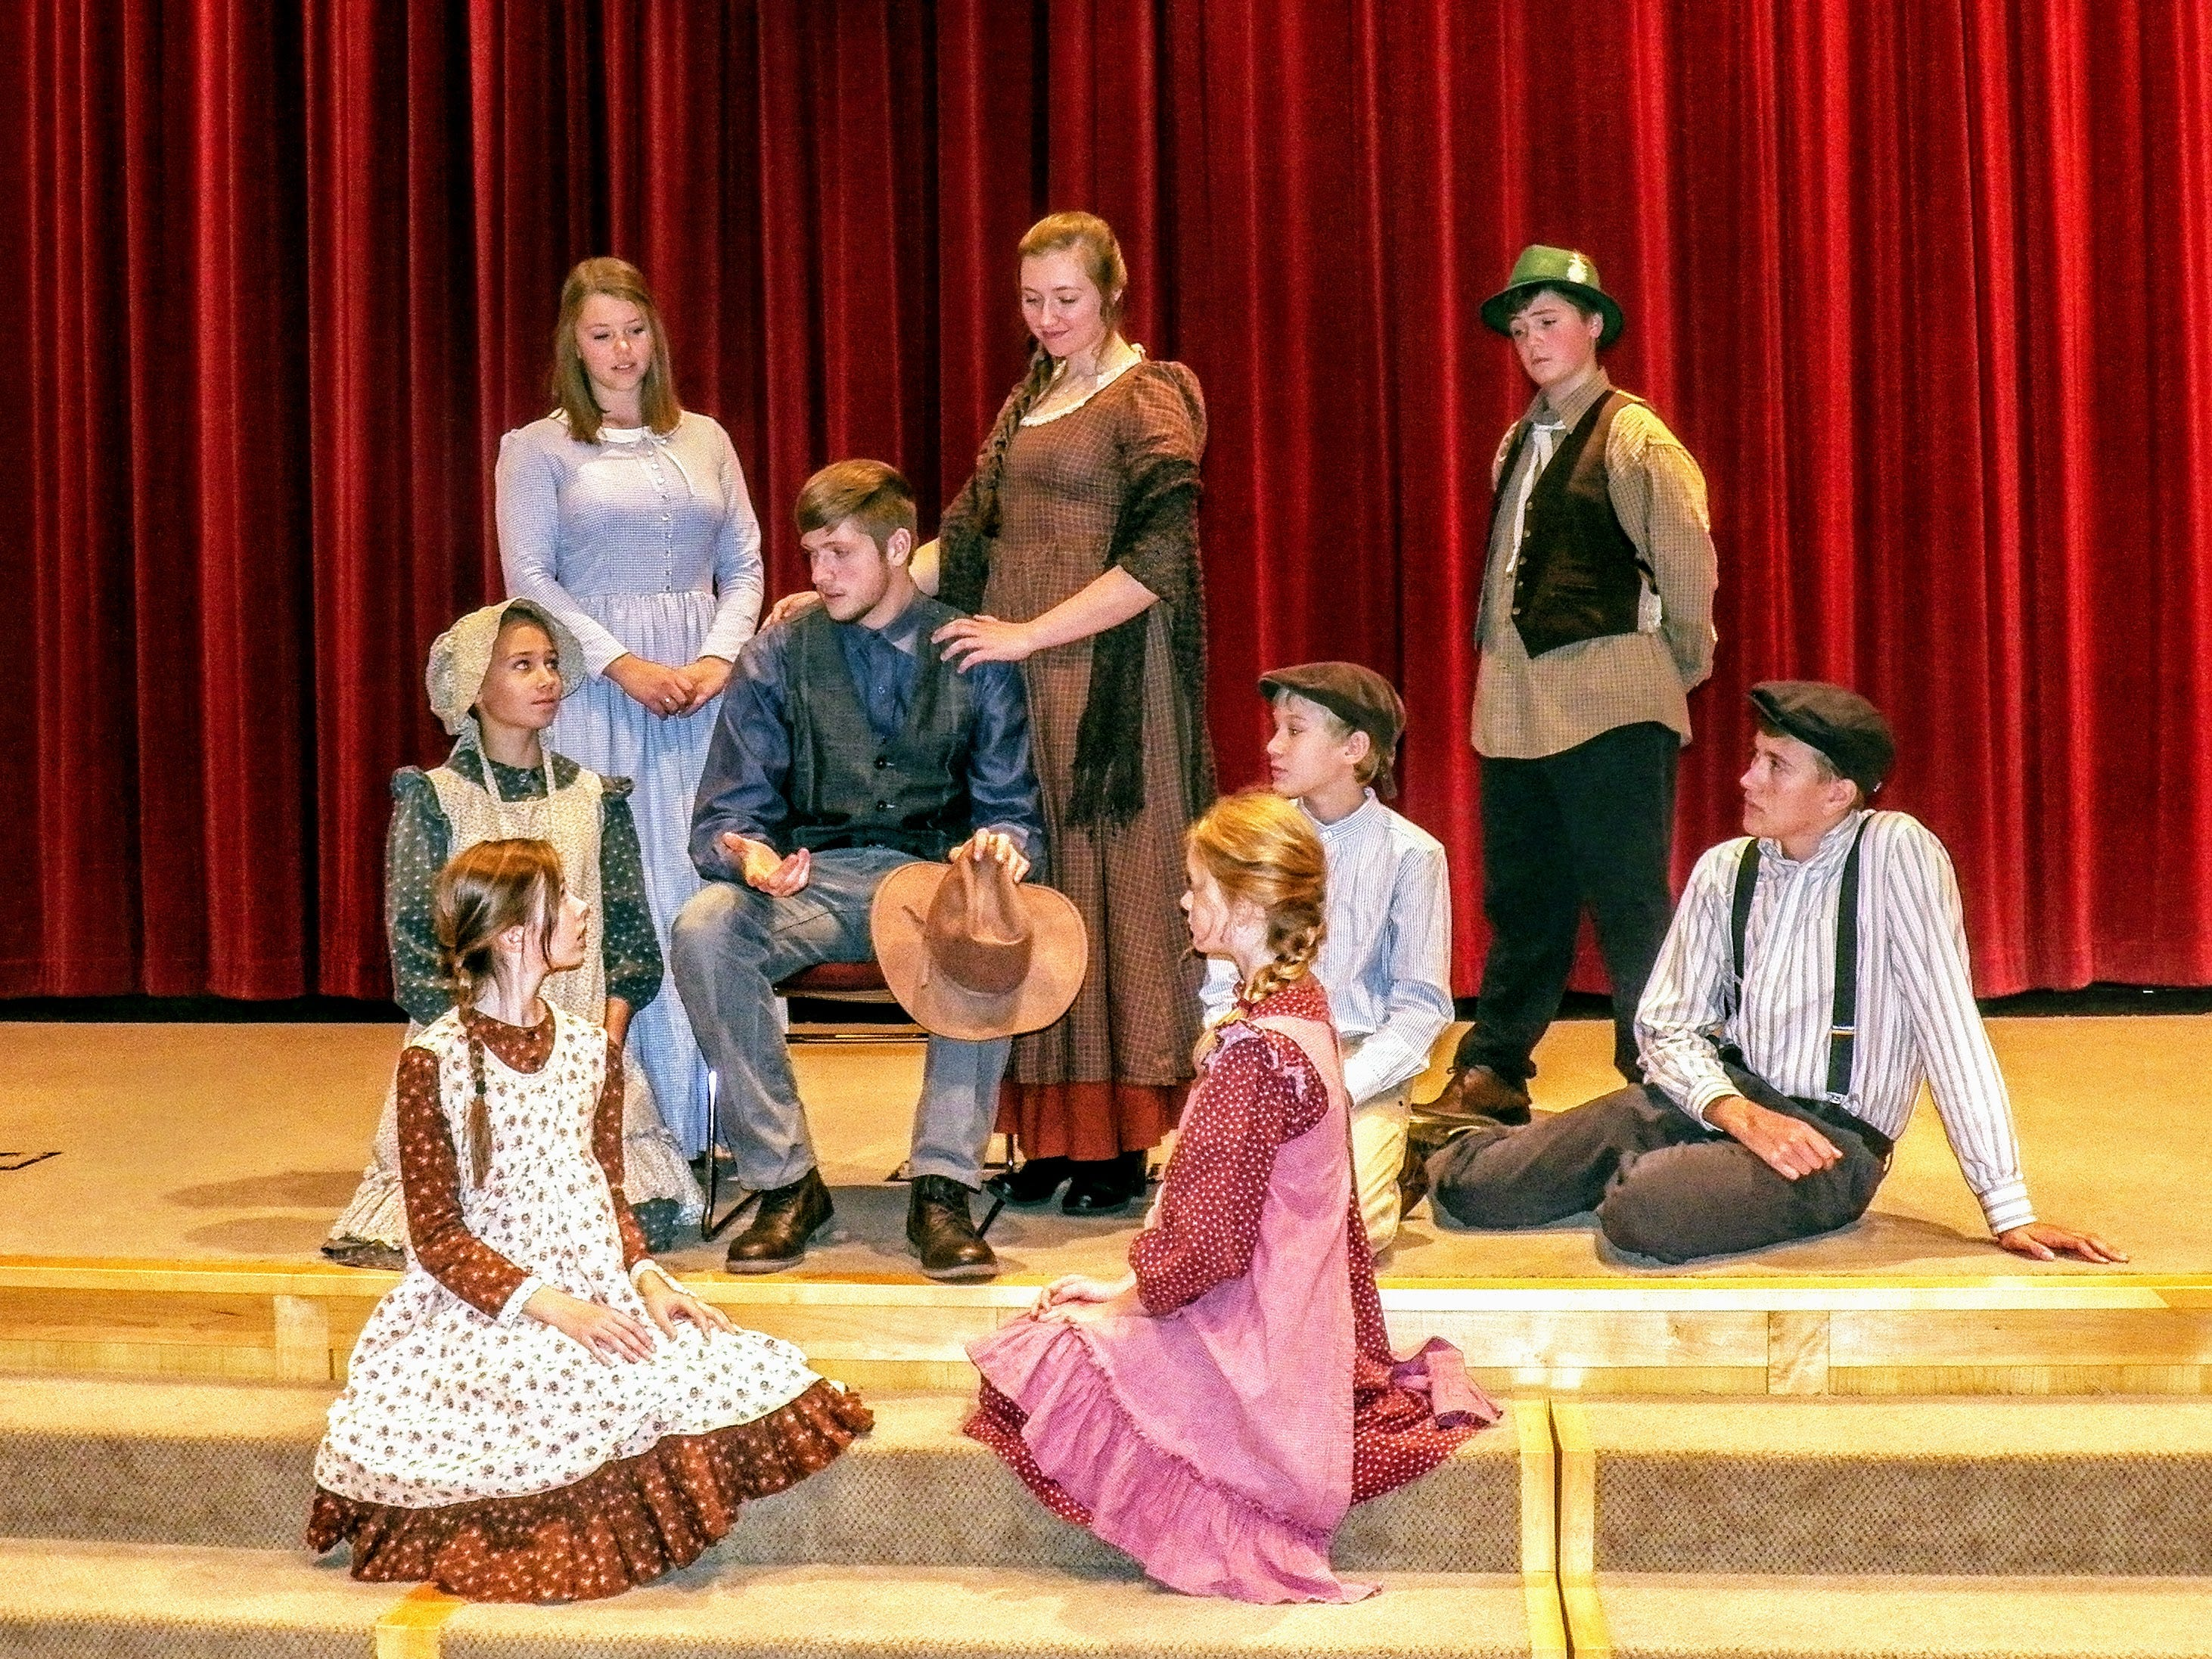 'Caddie Woodlawn' story to be presented by homeschool troupe Nov. 9-10